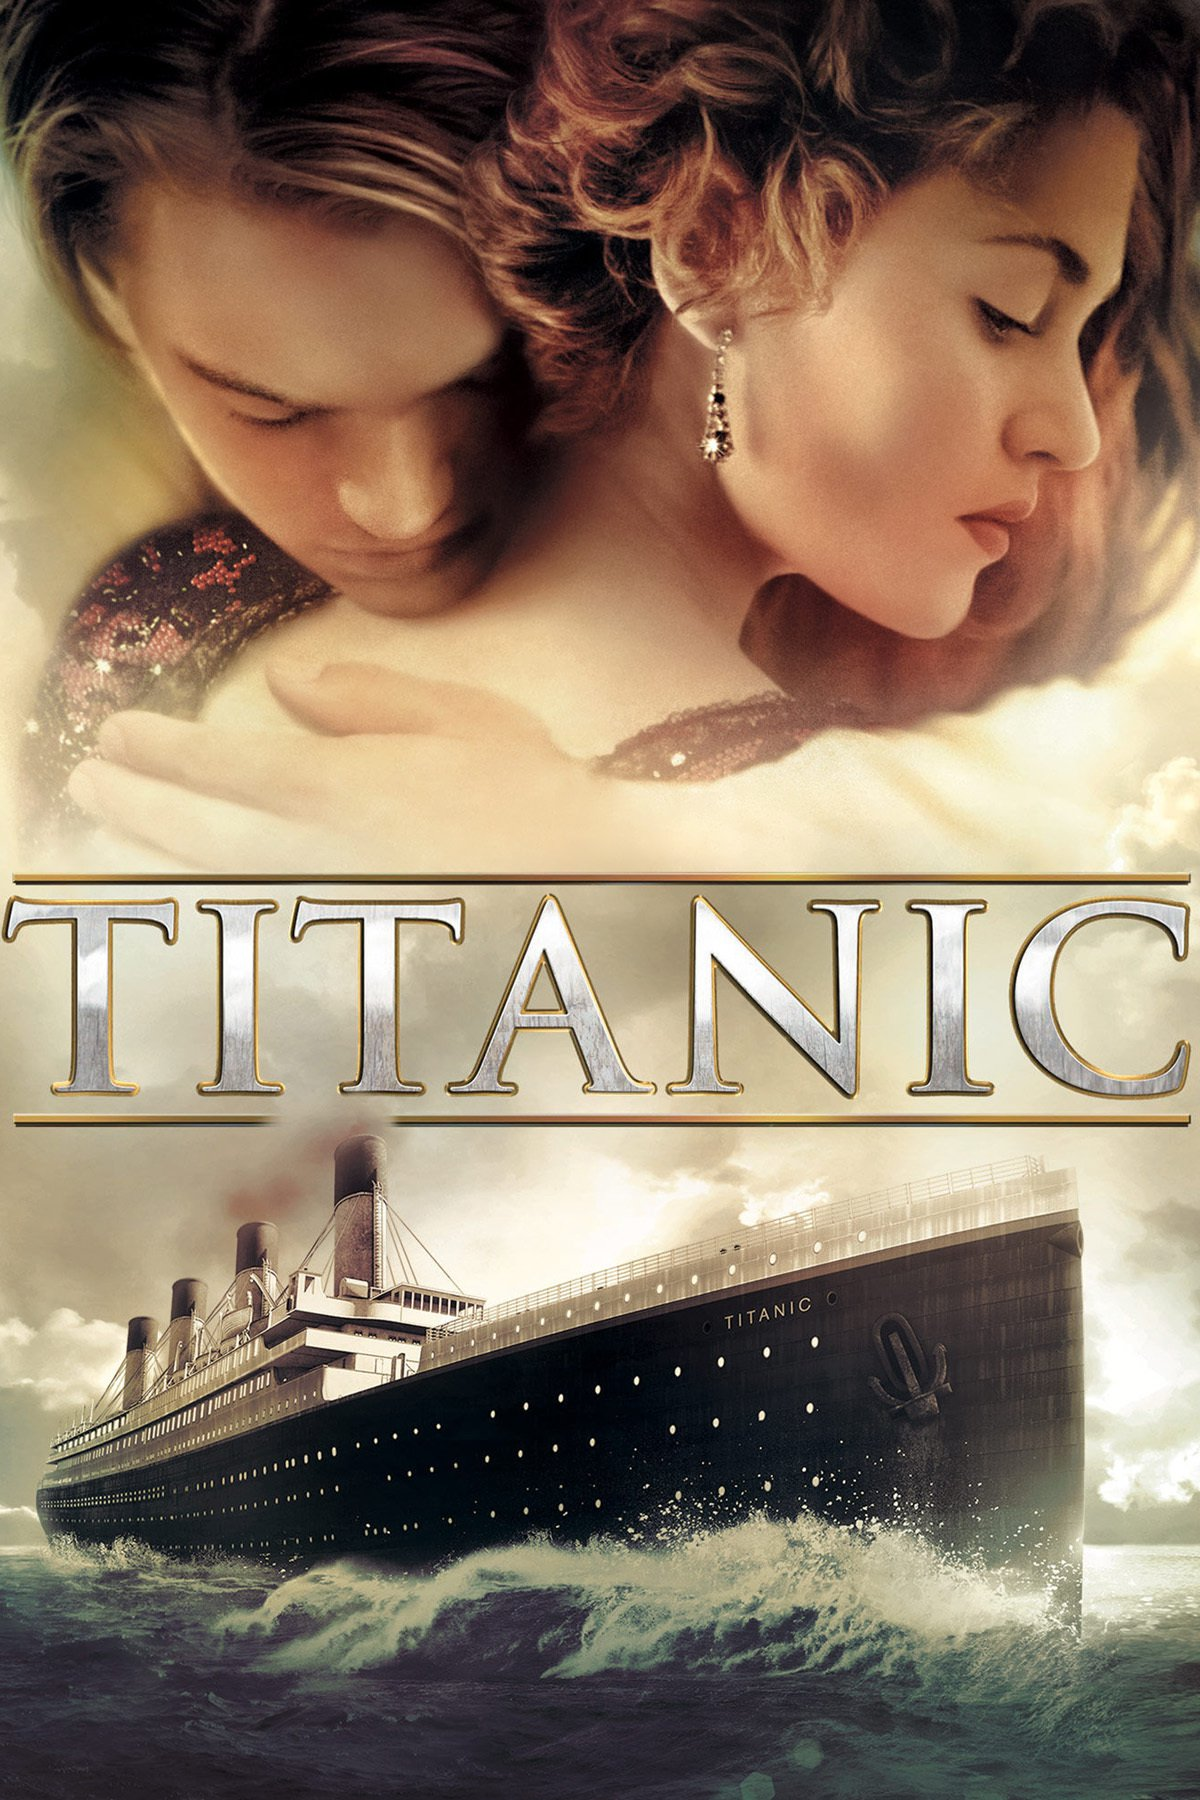 classic-movie-titanic-art-silk-poster-decorative-wall-painting-24x36inch